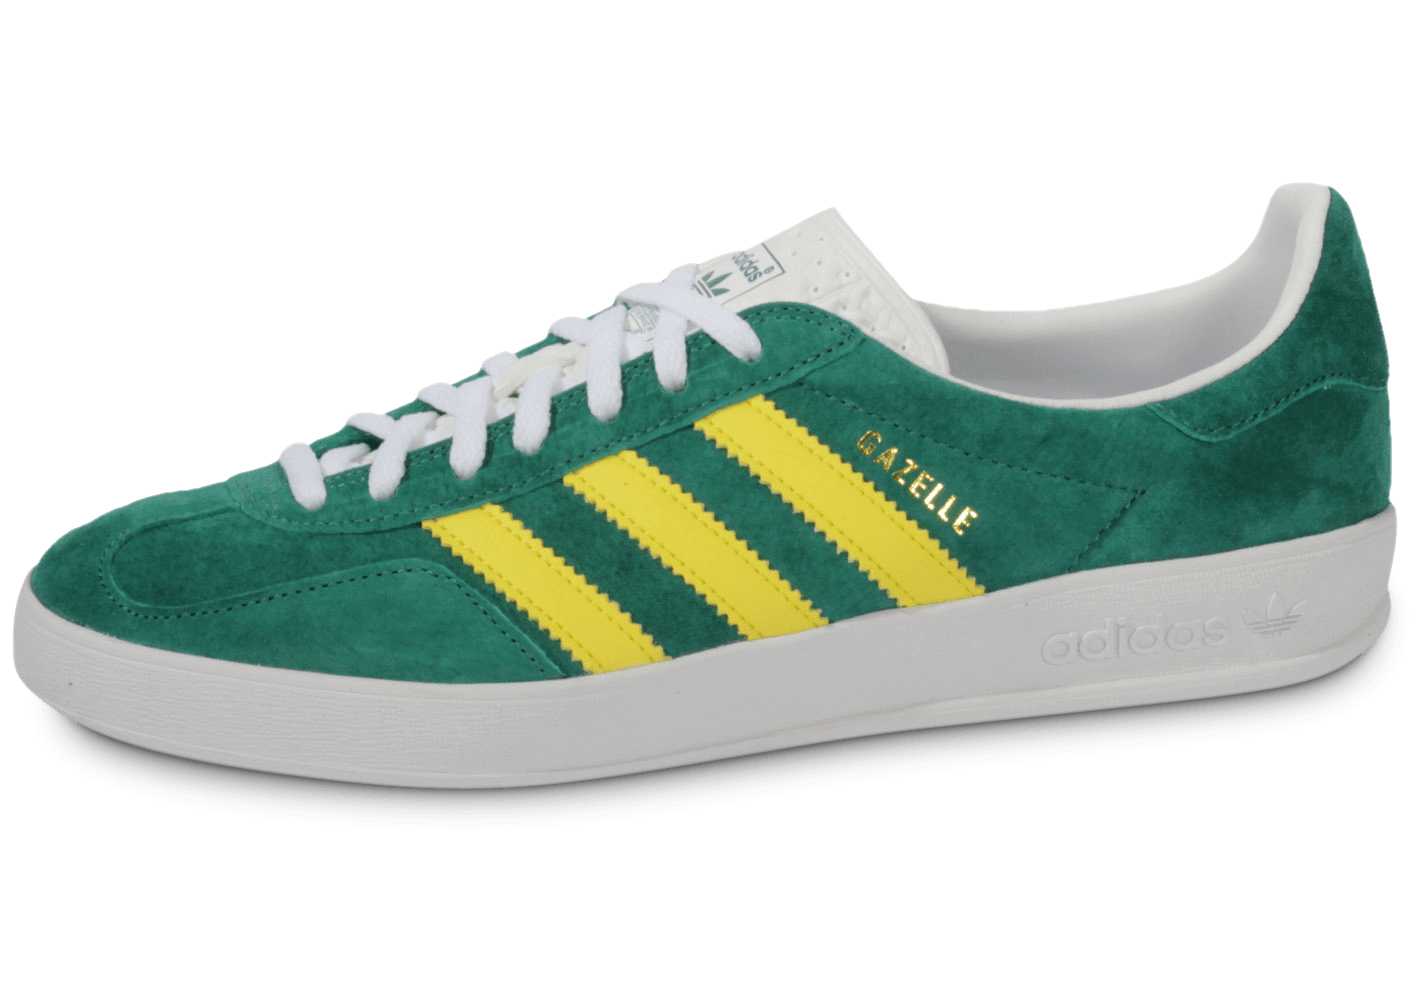 new product c55c4 c55e5 adidas Gazelle Indoor Verte - Chaussures Baskets homme - Chausport